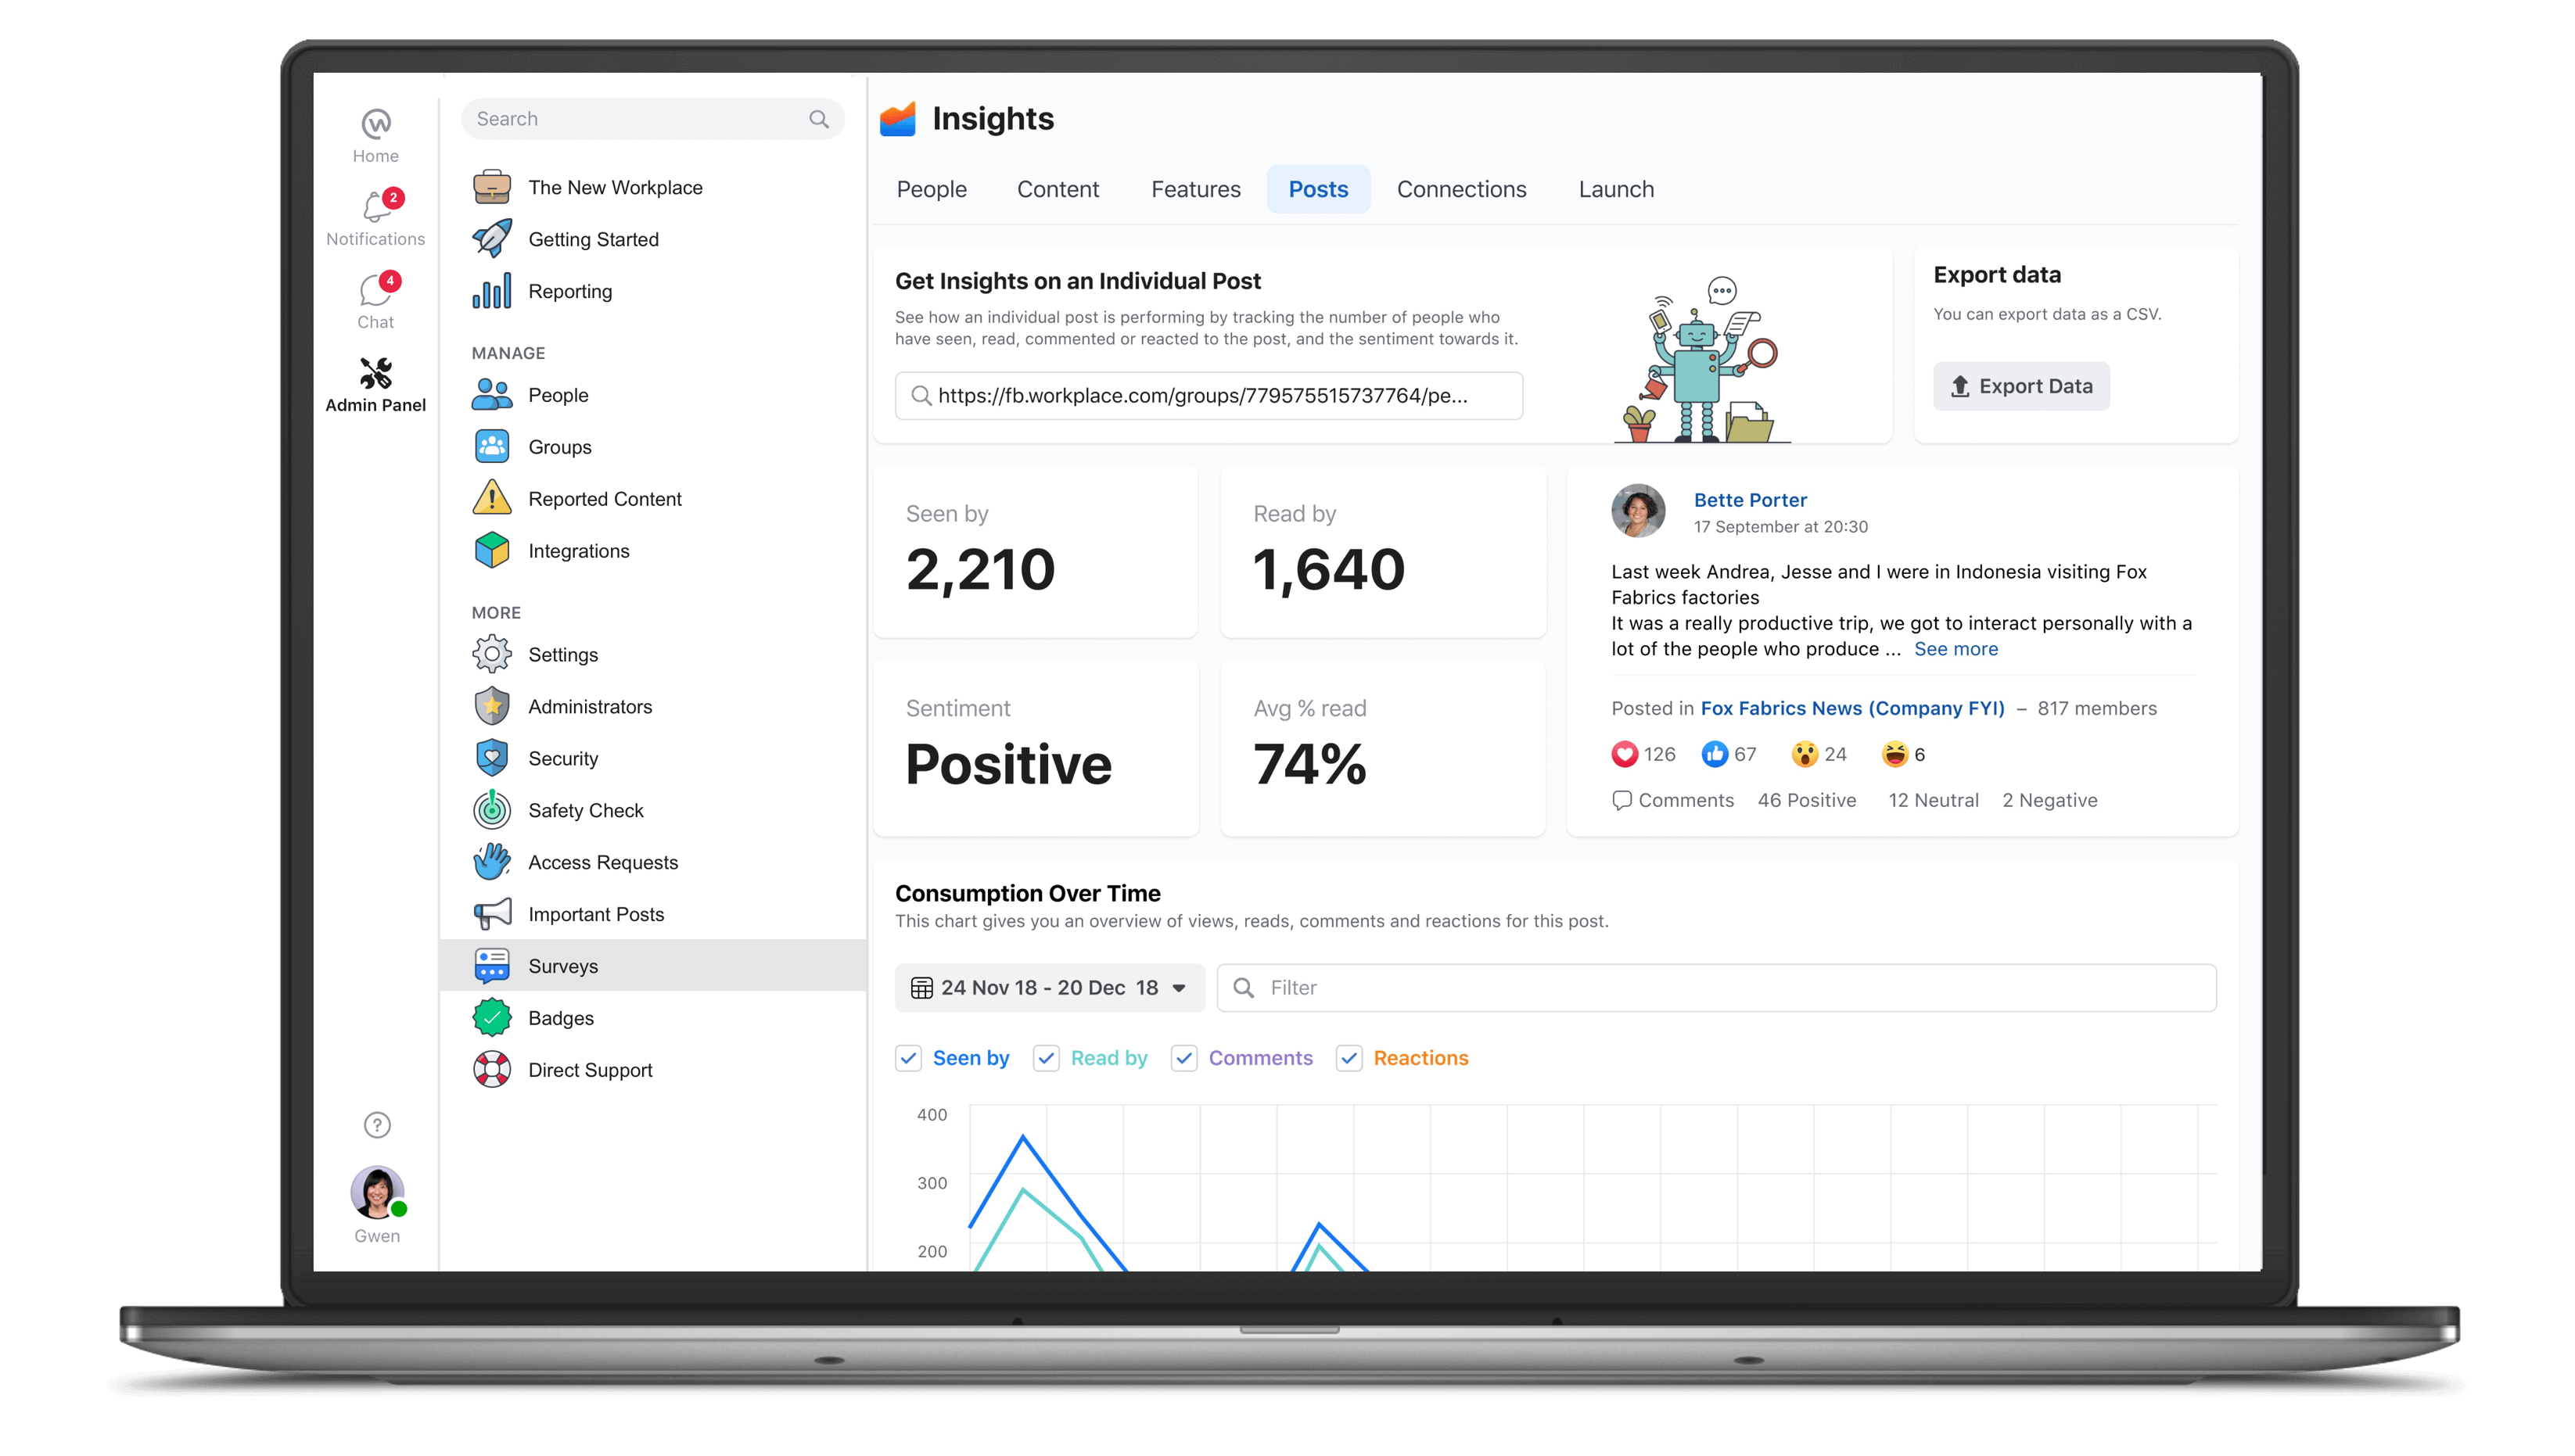 Facebook Workplace insights